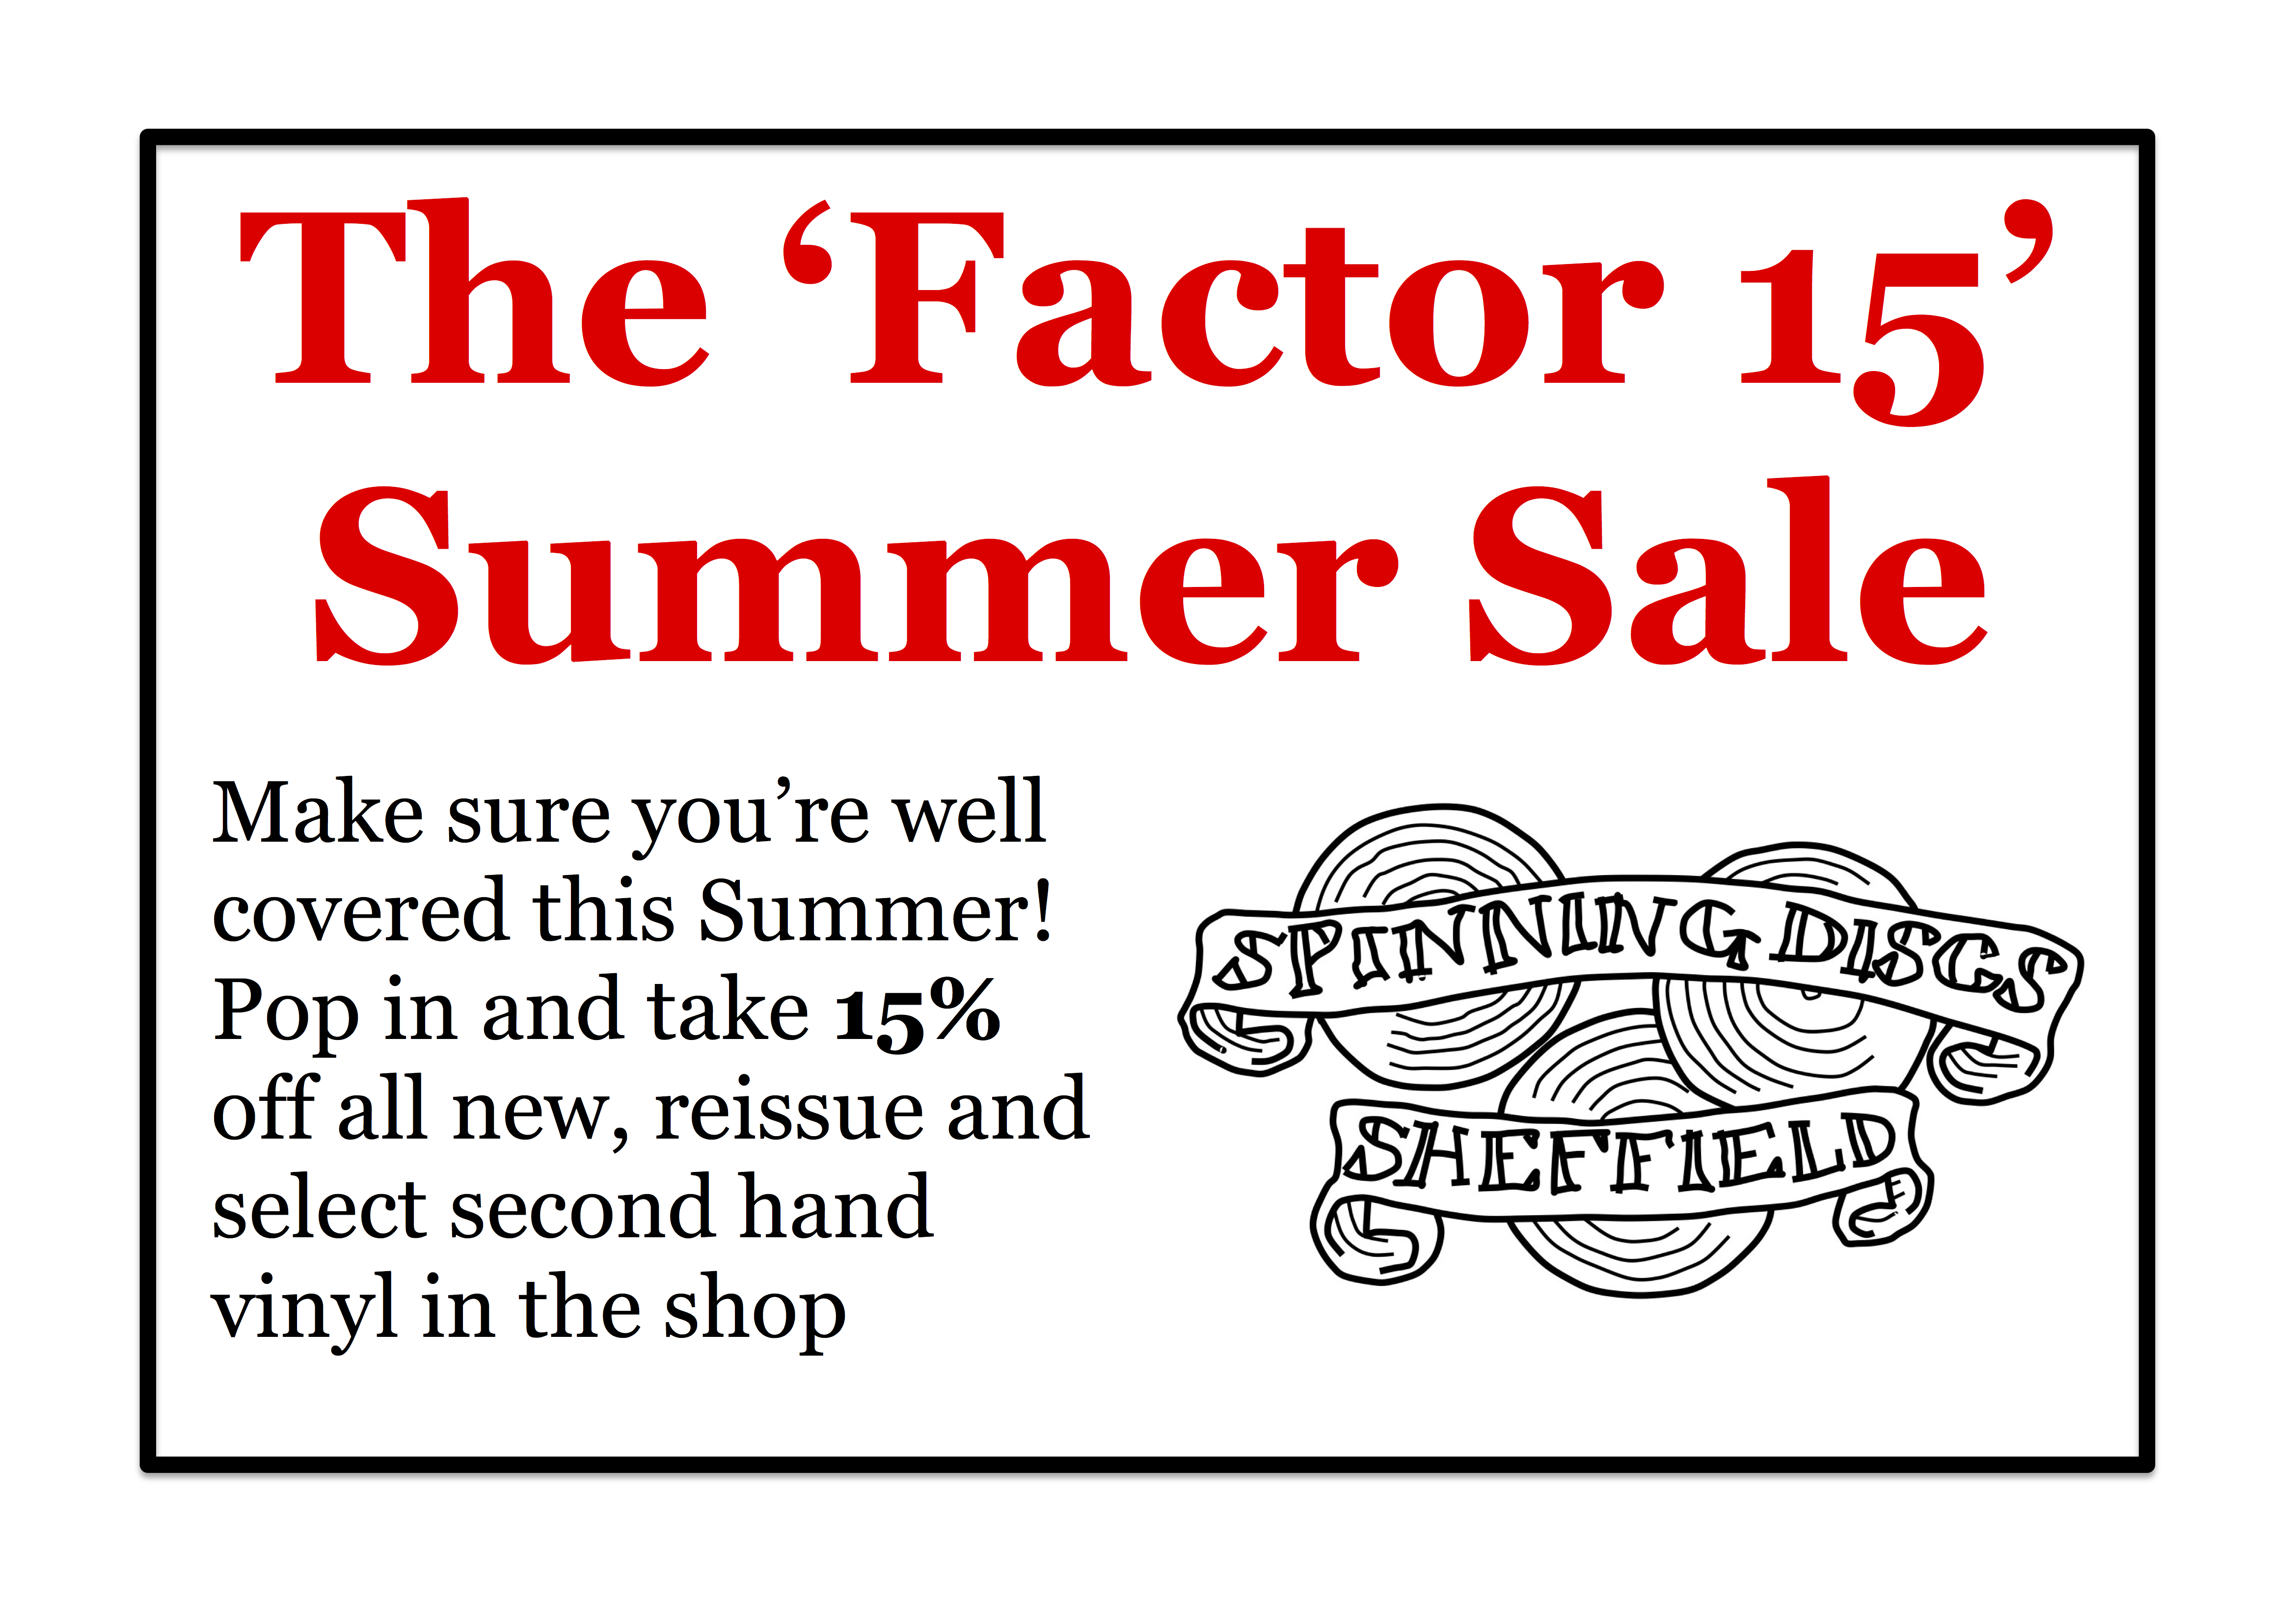 Factor 15 Summer Sale